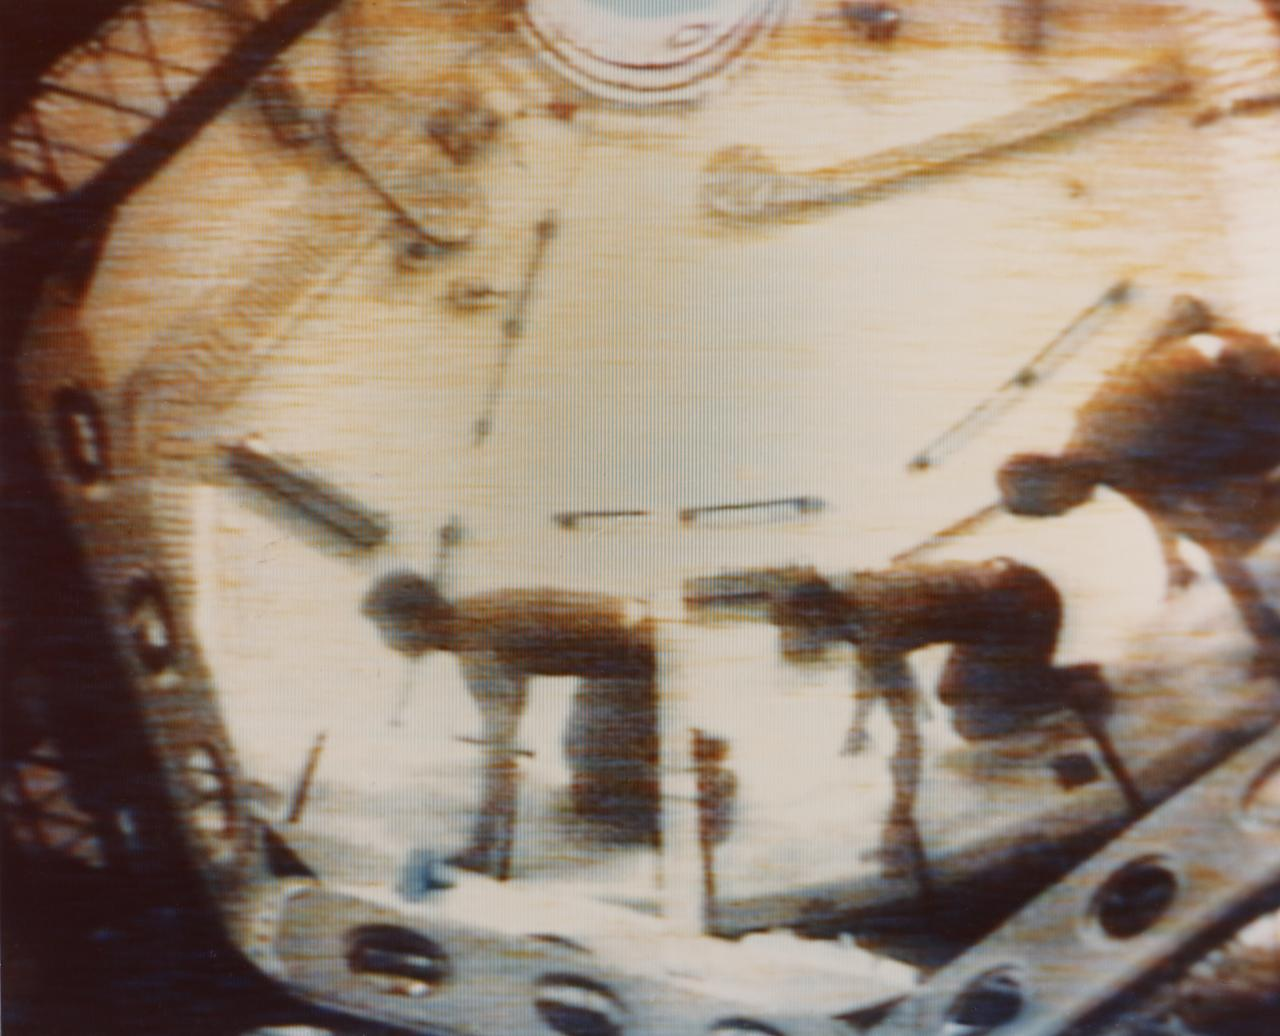 Three Skylab 2 crewmen demonstrate effects of weightlessness